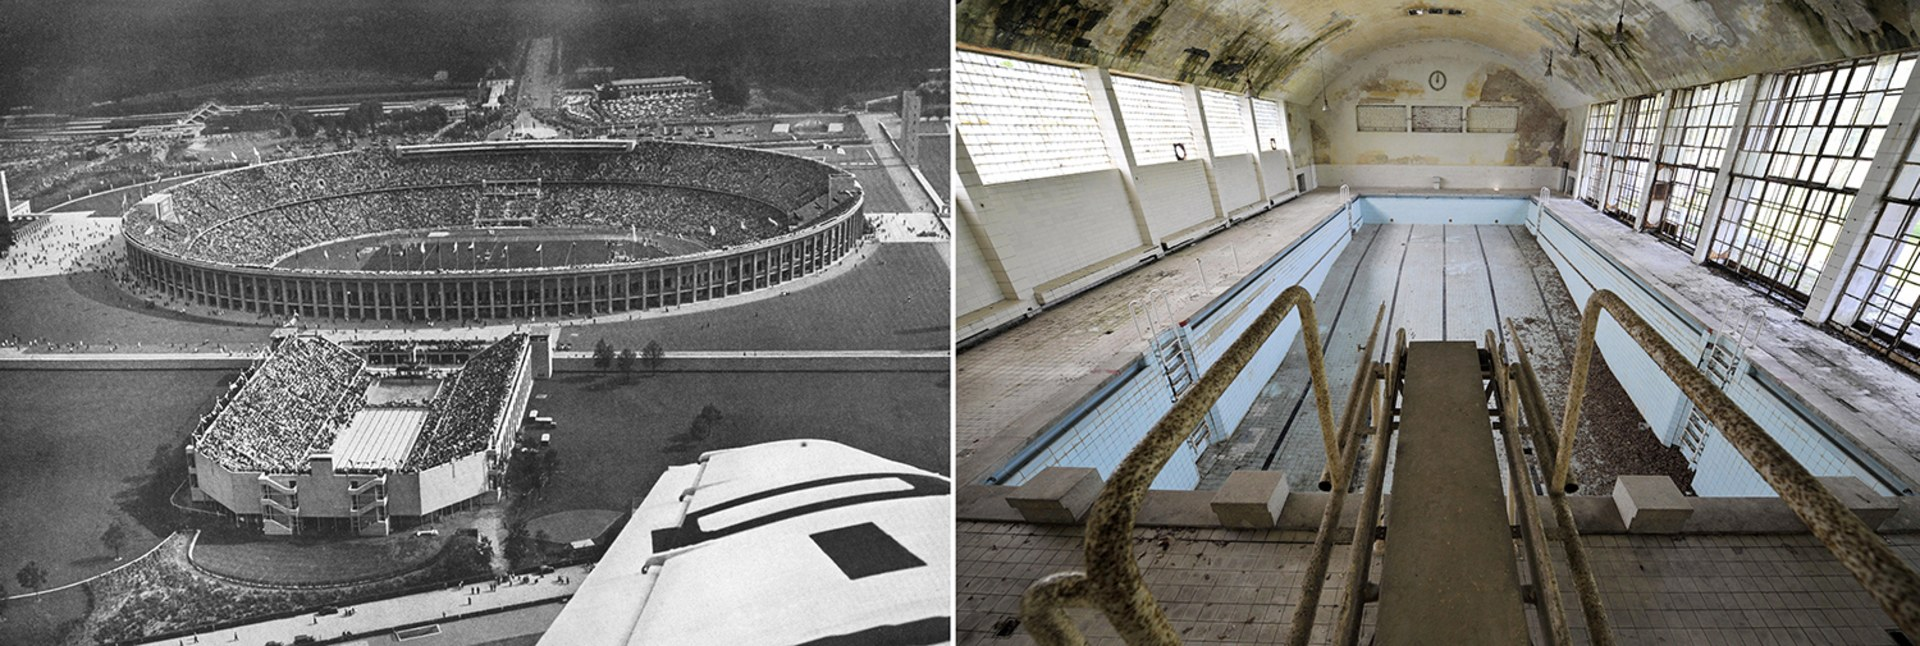 Olympic venues: Where are they now? - TODAY.com